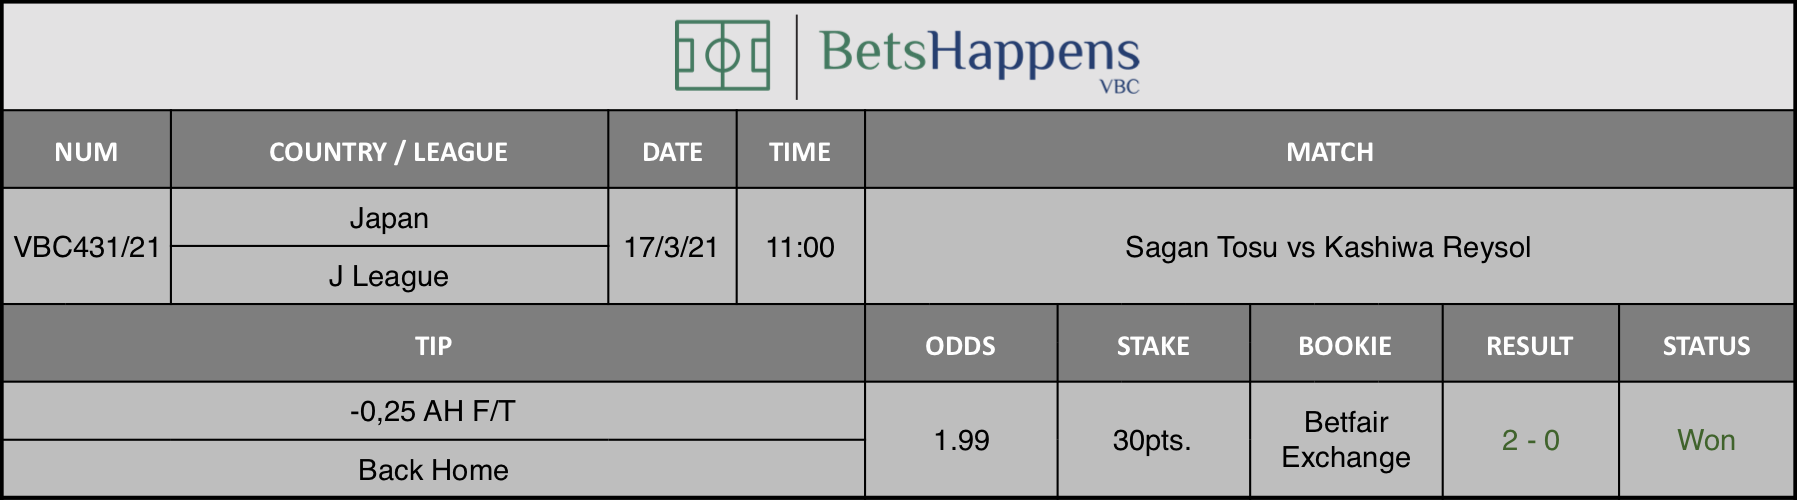 Results of our tip for the Sagan Tosu vs Kashiwa Reysol match where -0,25 AH F/T Back Home is recommended.